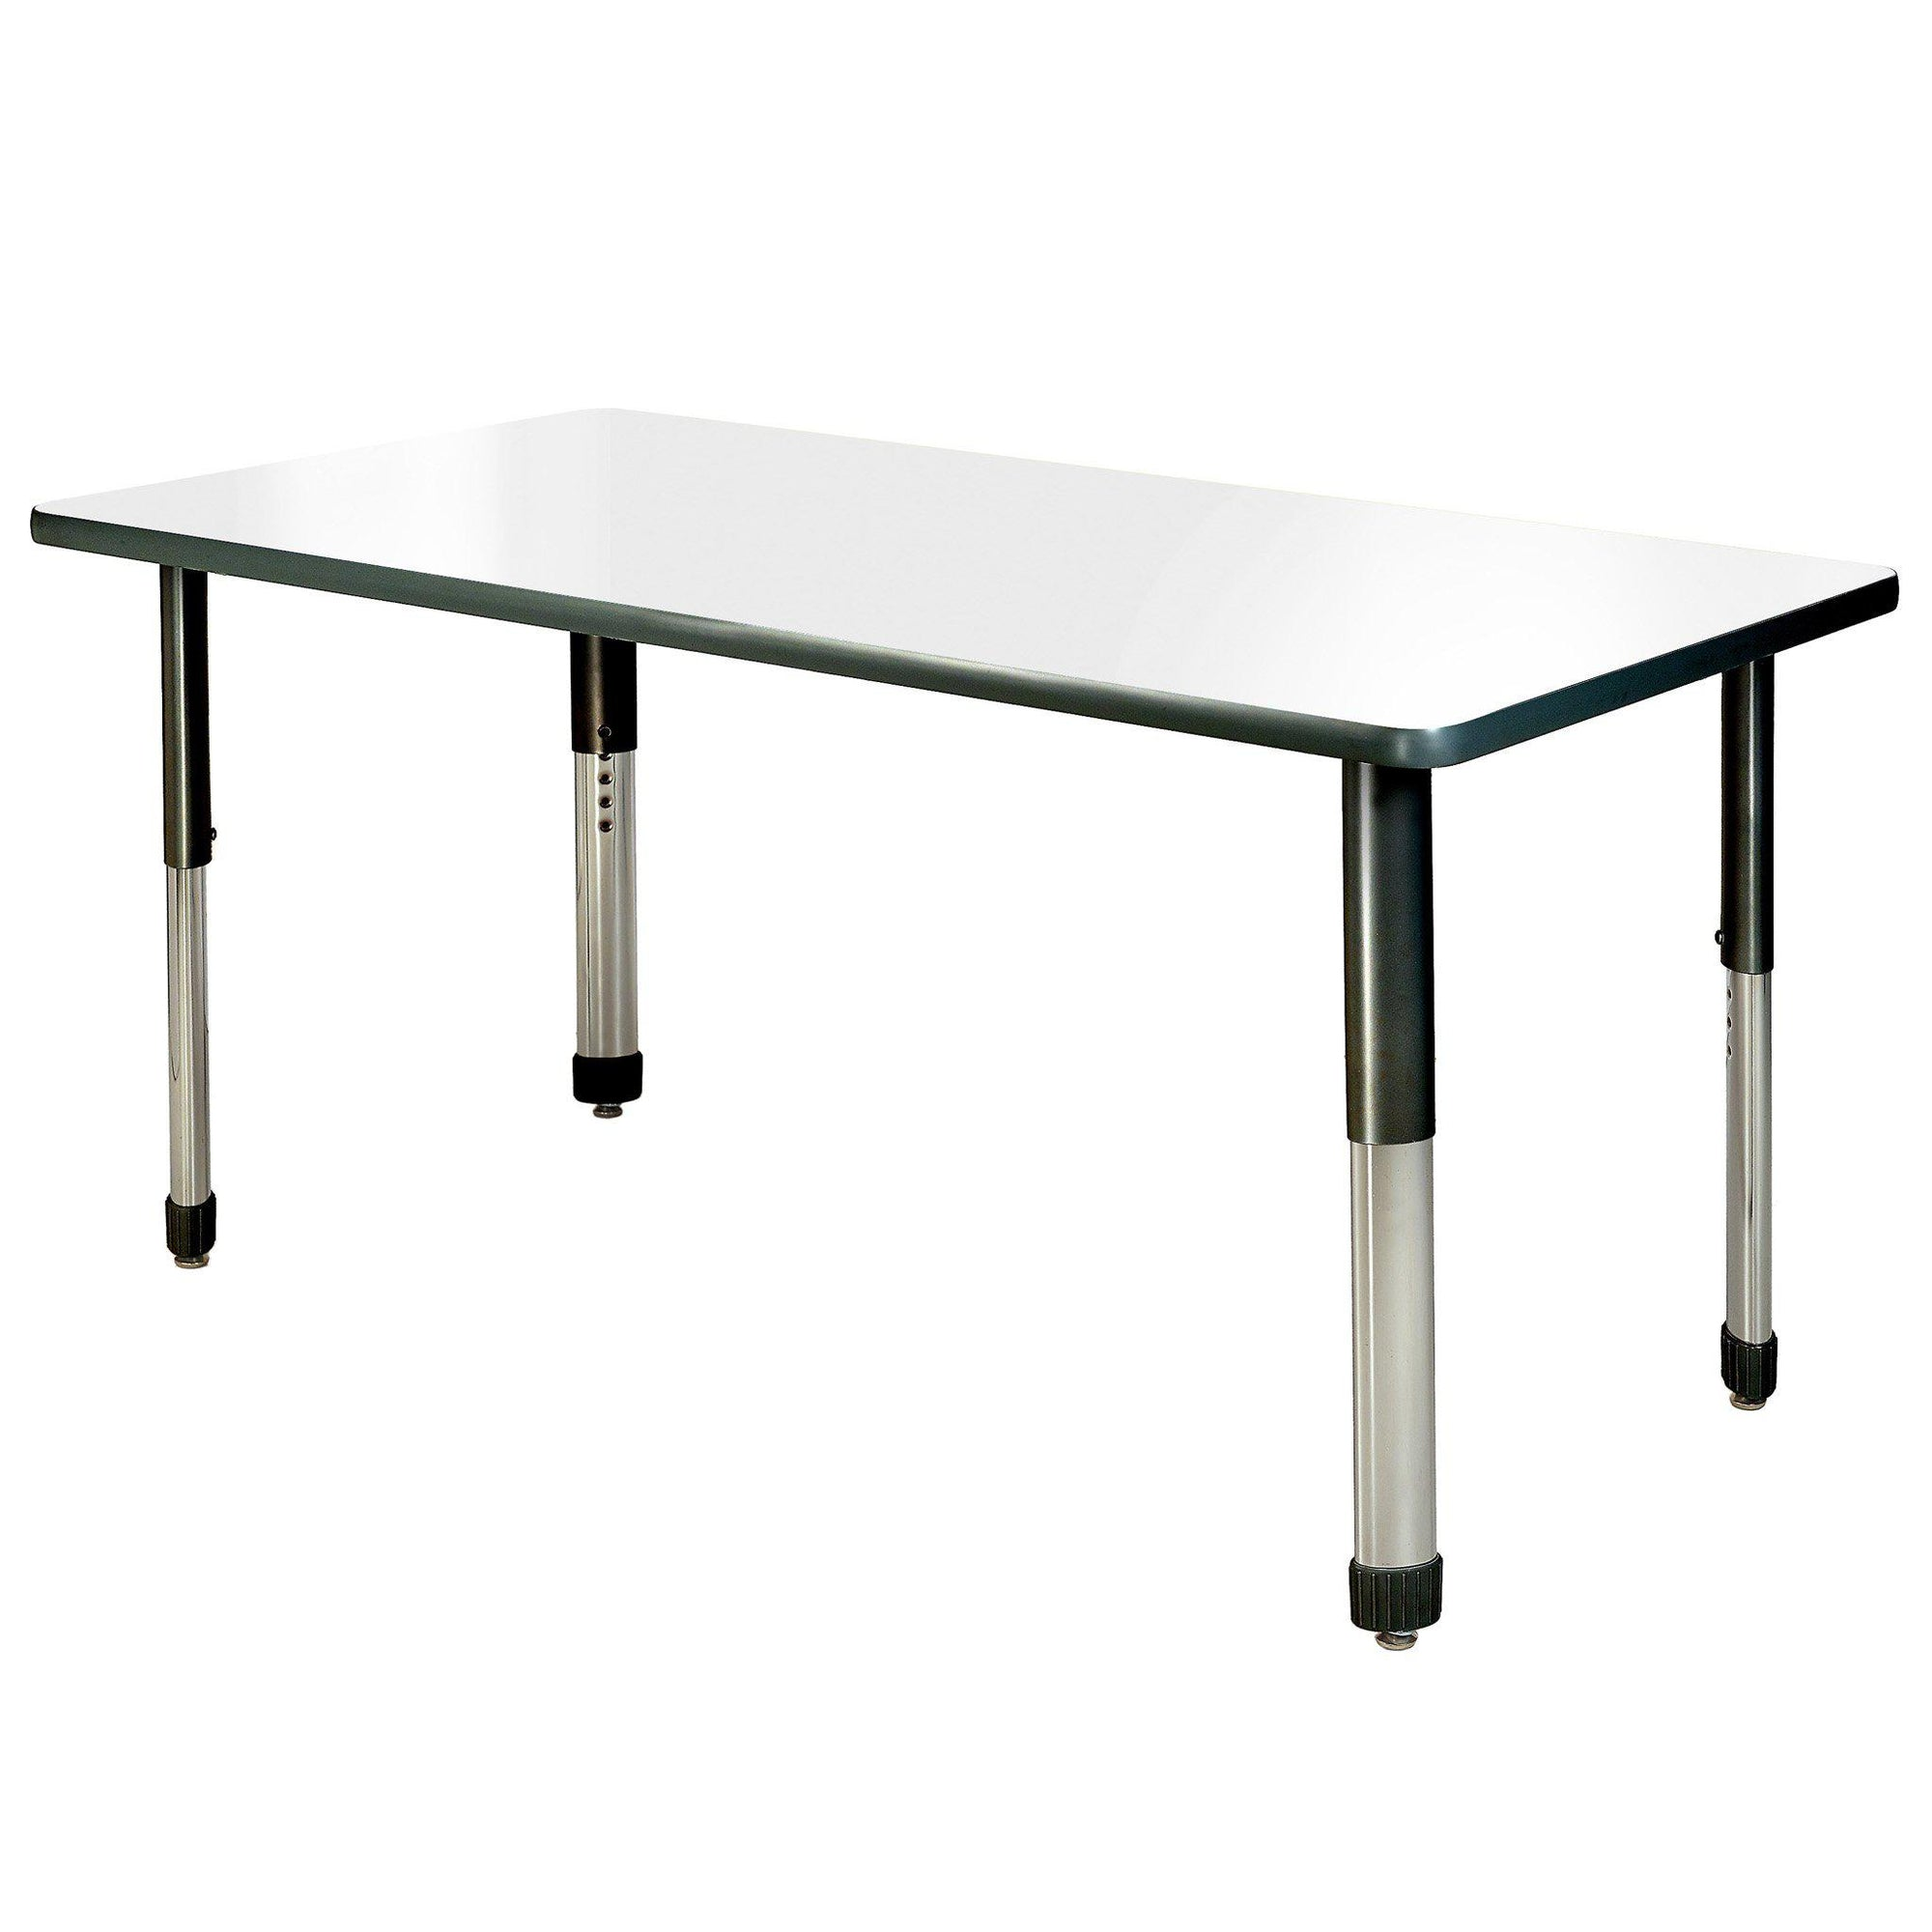 "Aero Dry Erase Activity Table, 36"" x 60"" Rectangle, Oval Adjustable Height Legs"